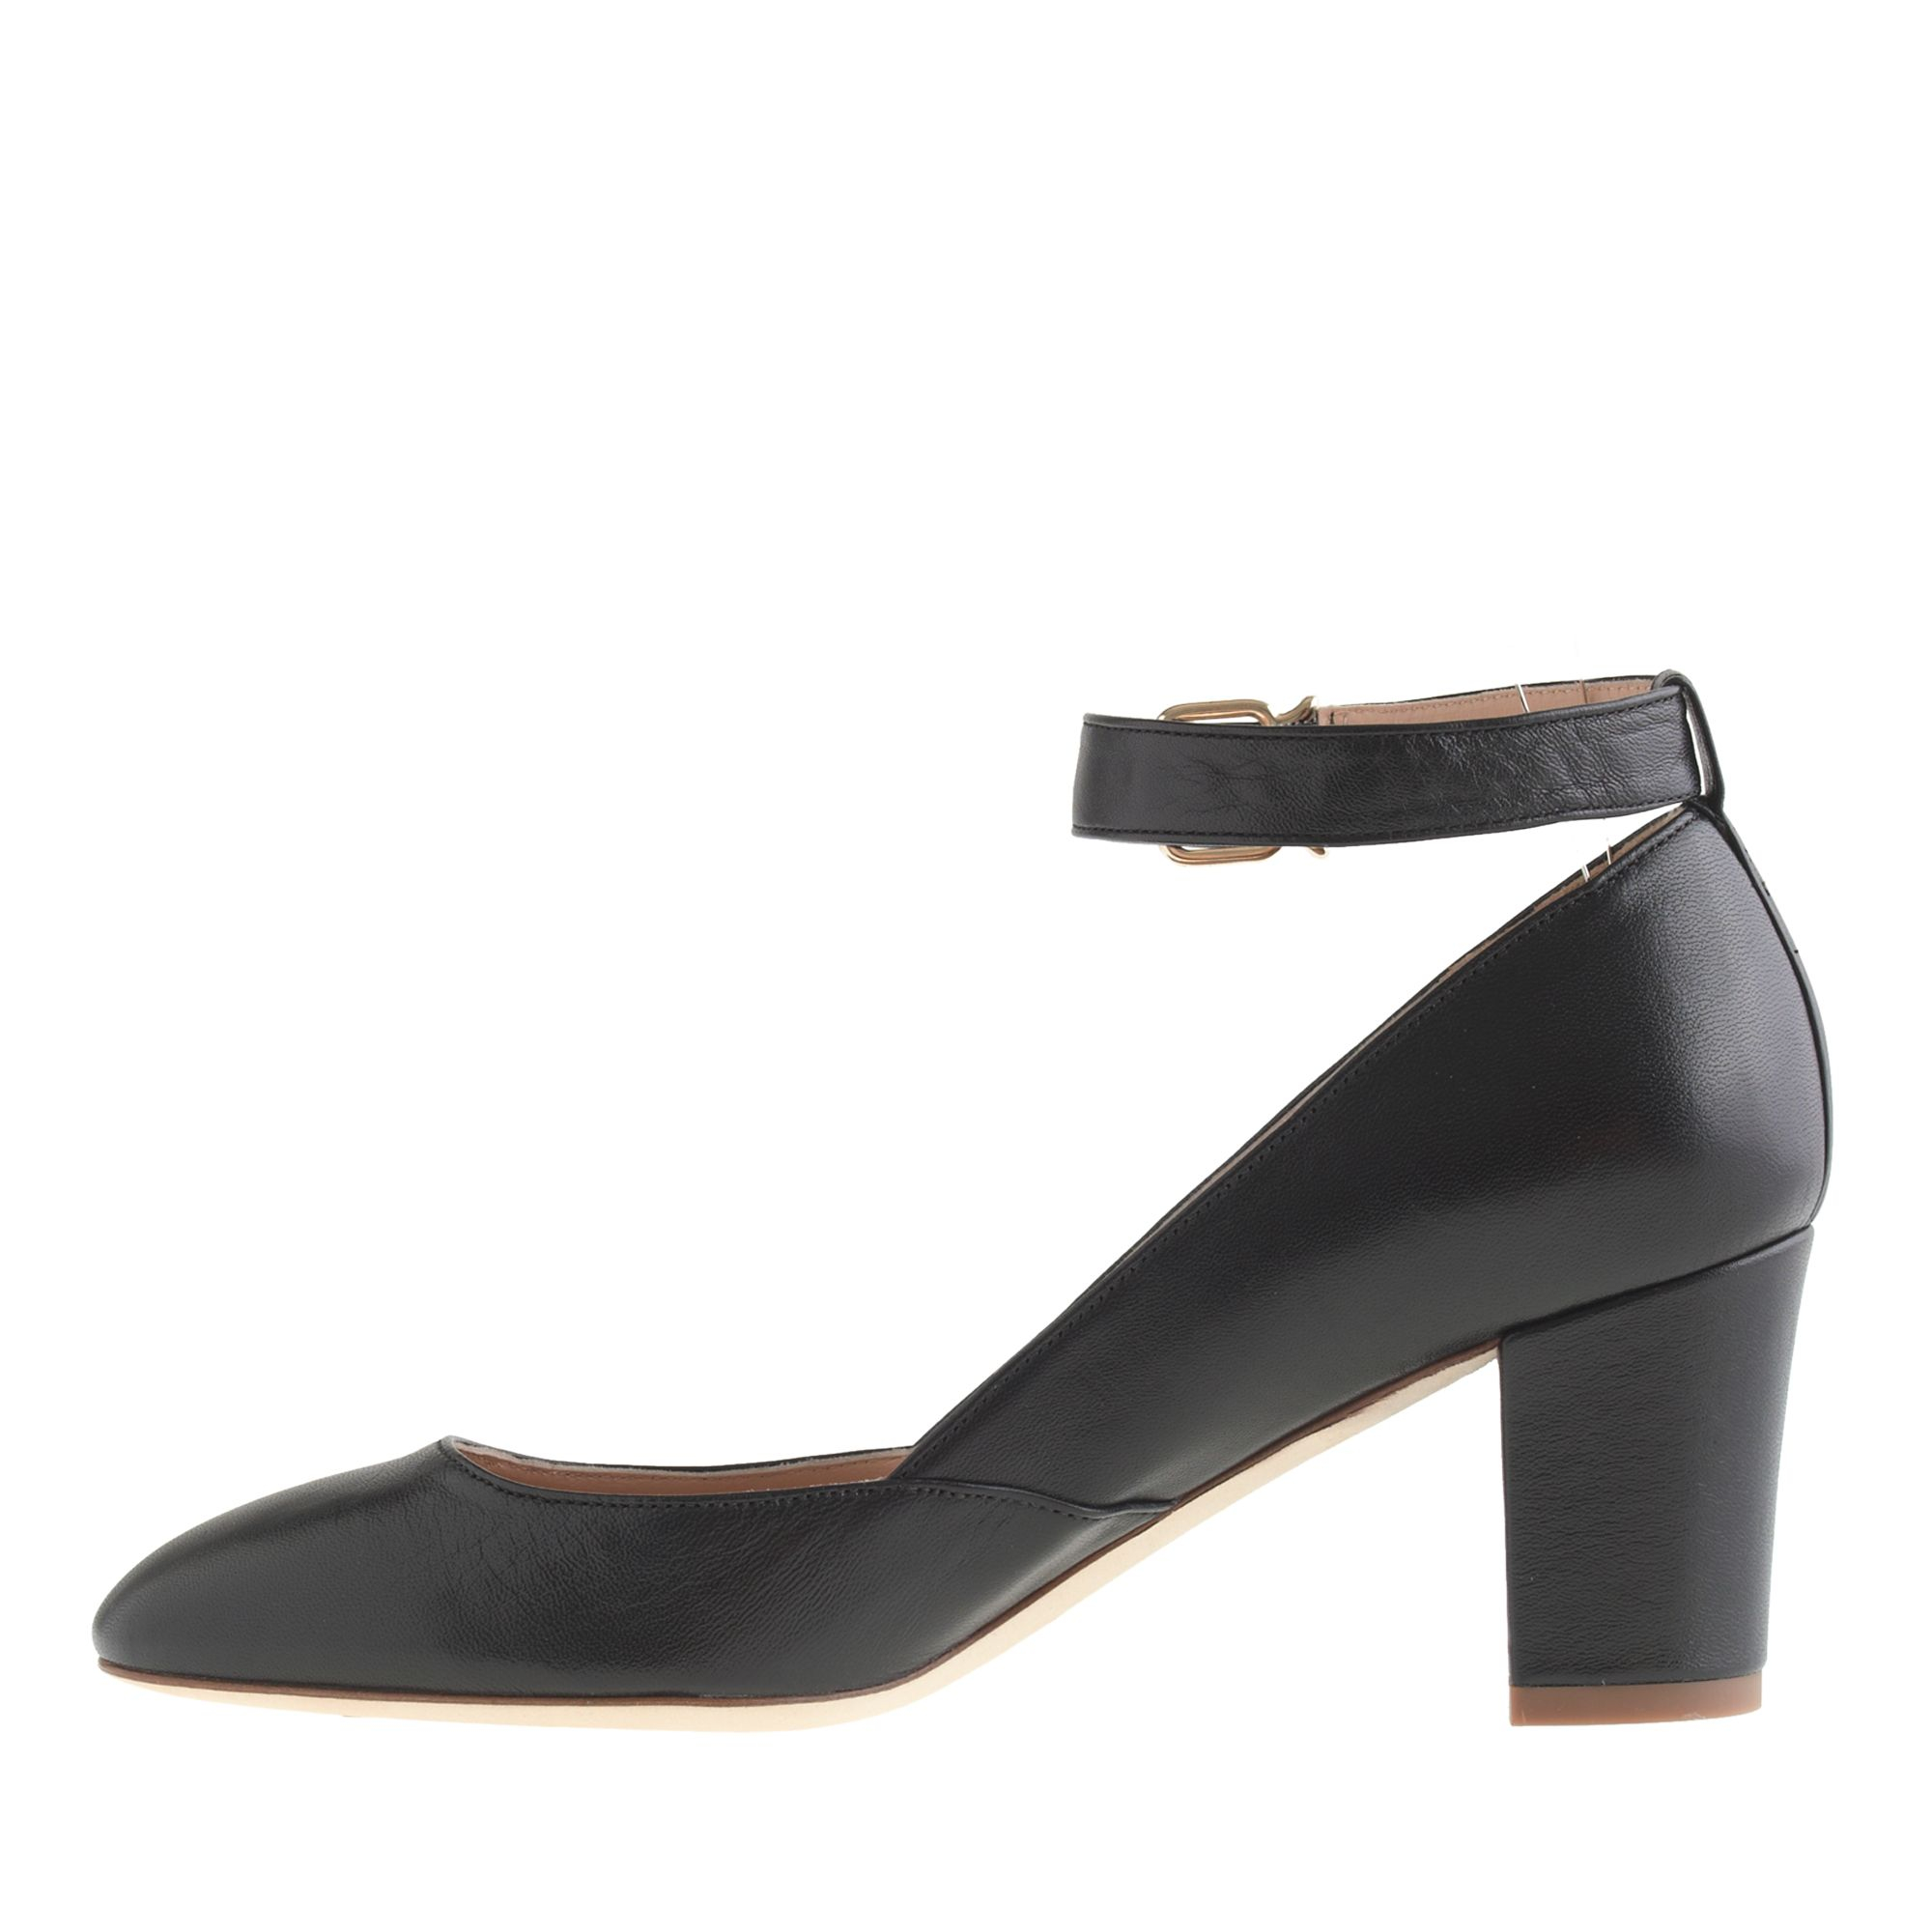 Mid Heel Pumps With Ankle Strap